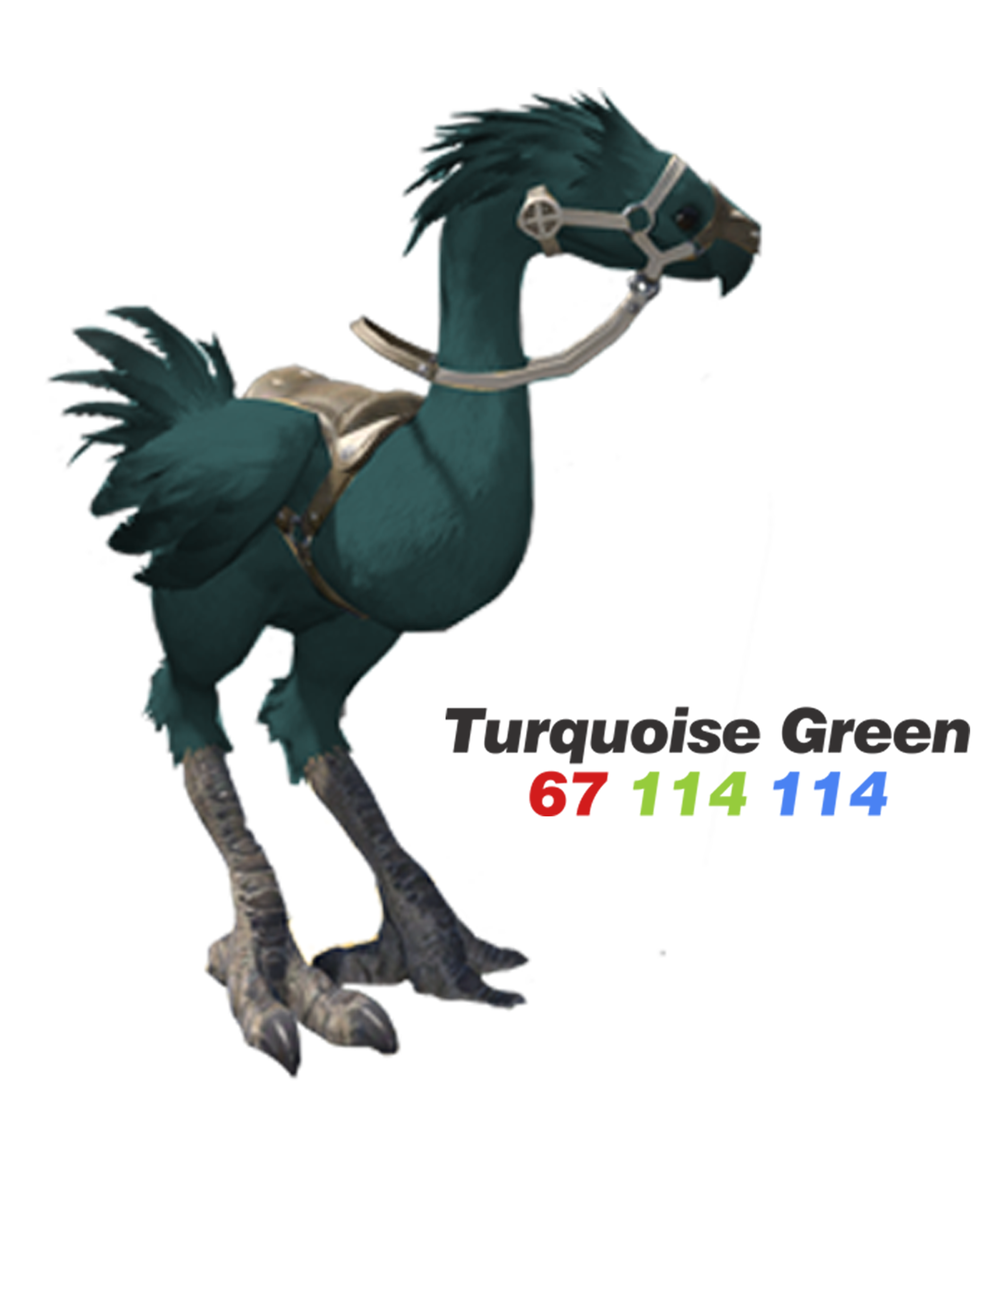 016turquoise.png